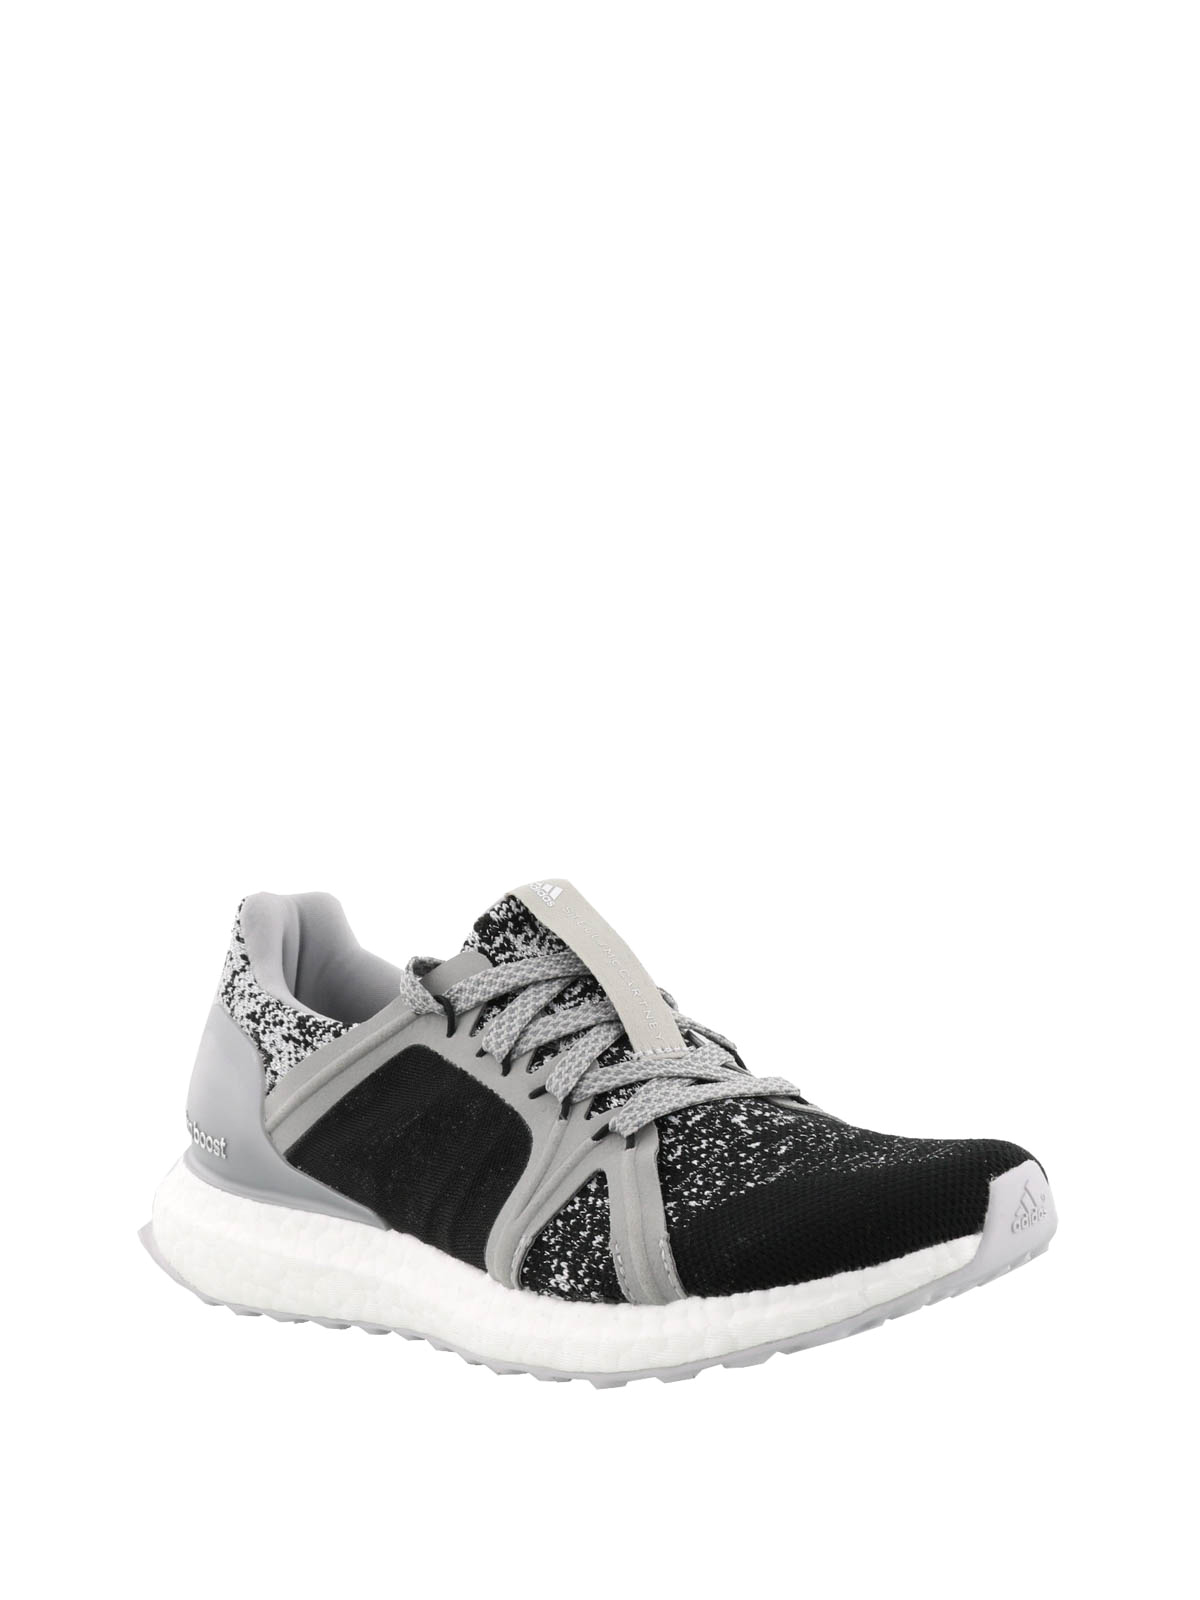 6e2bf3ede361f ADIDAS BY STELLA MCCARTNEY  trainers online - Ultraboost grey sneakers